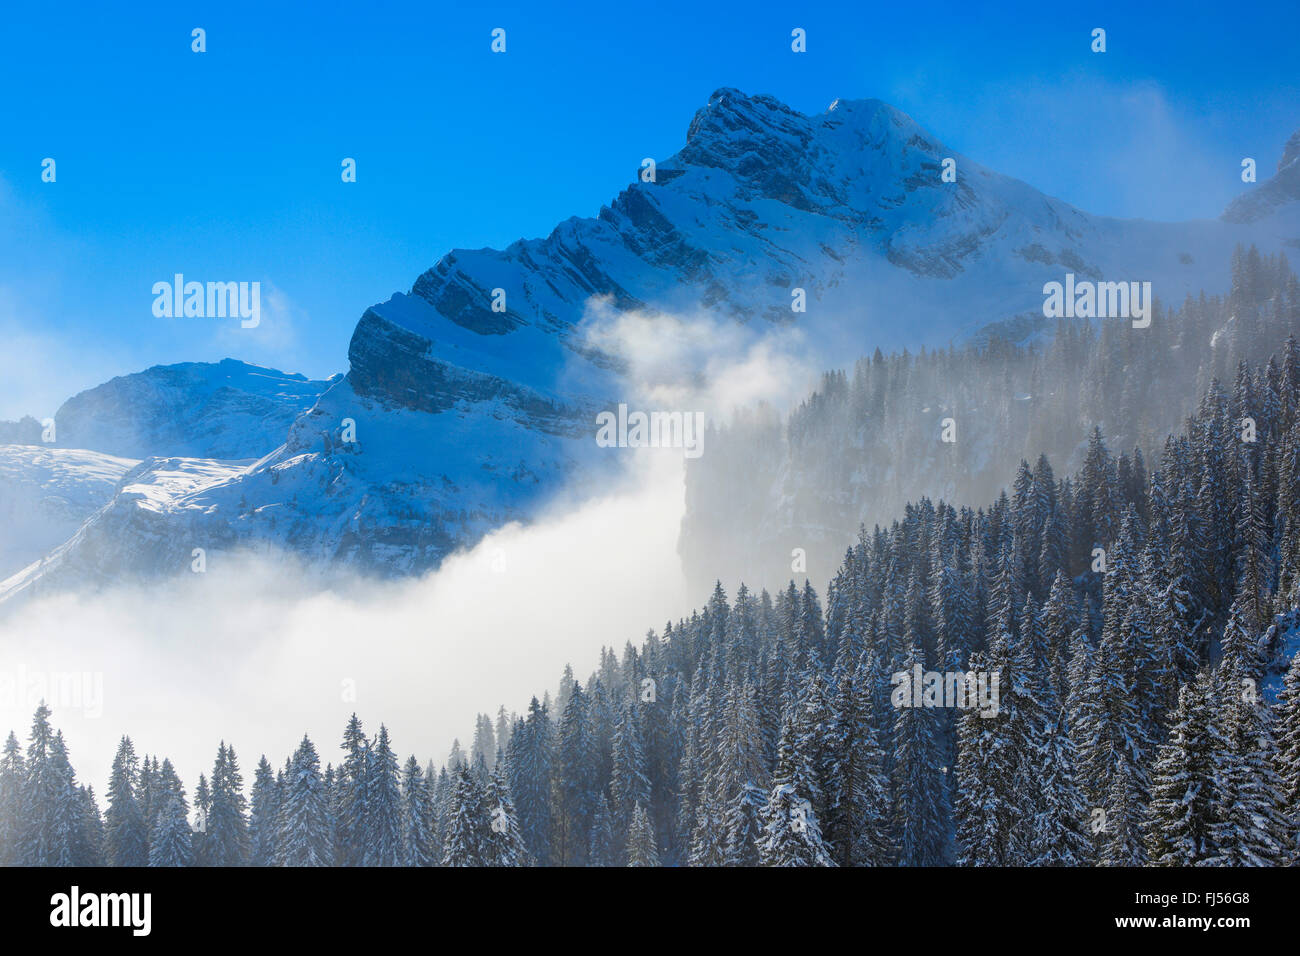 Ortstock at the Wallis Alps, Switzerland - Stock Image